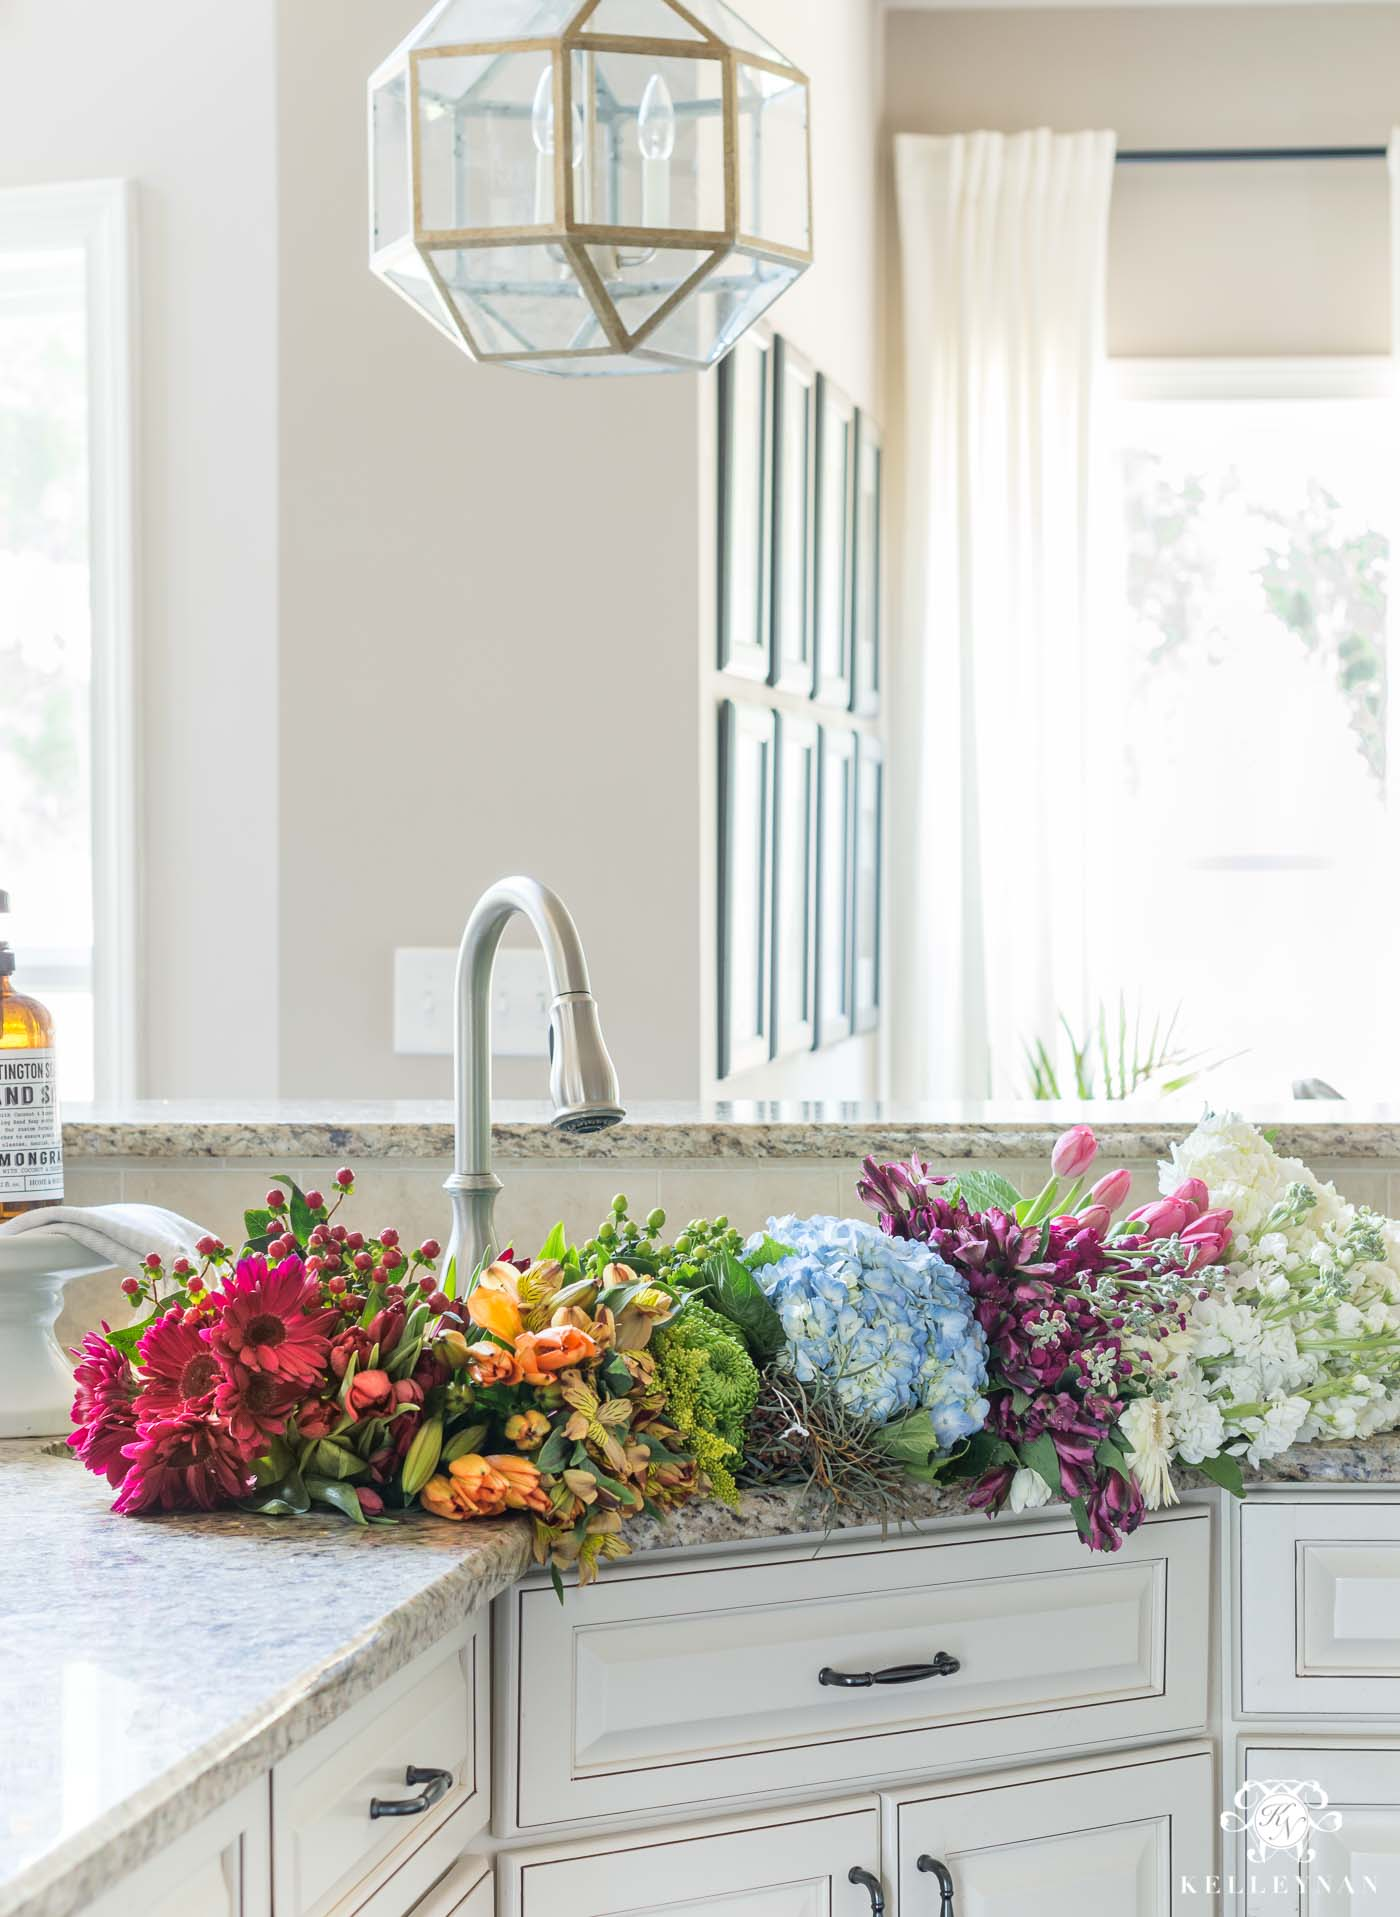 Rainbow flower assortment in the kitchen sink for centerpiece ideas